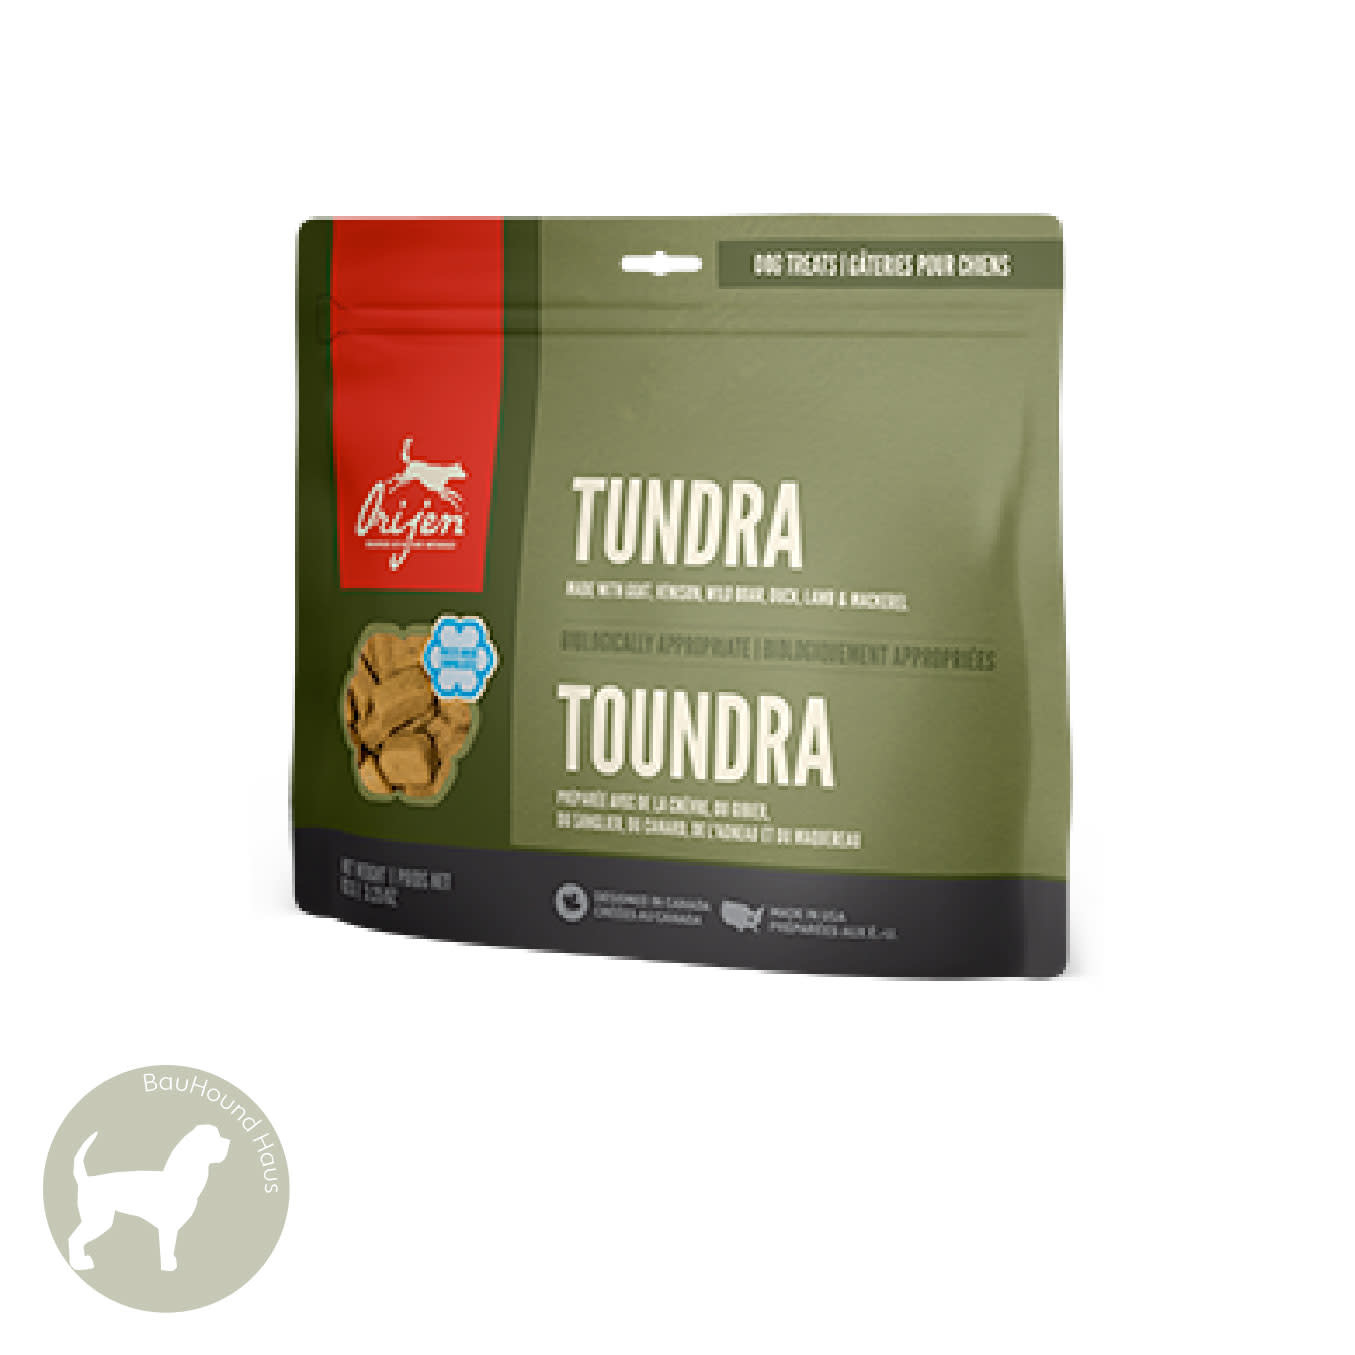 Orijen Orijen Freeze Dried Tundra Treat, 3.25 oz